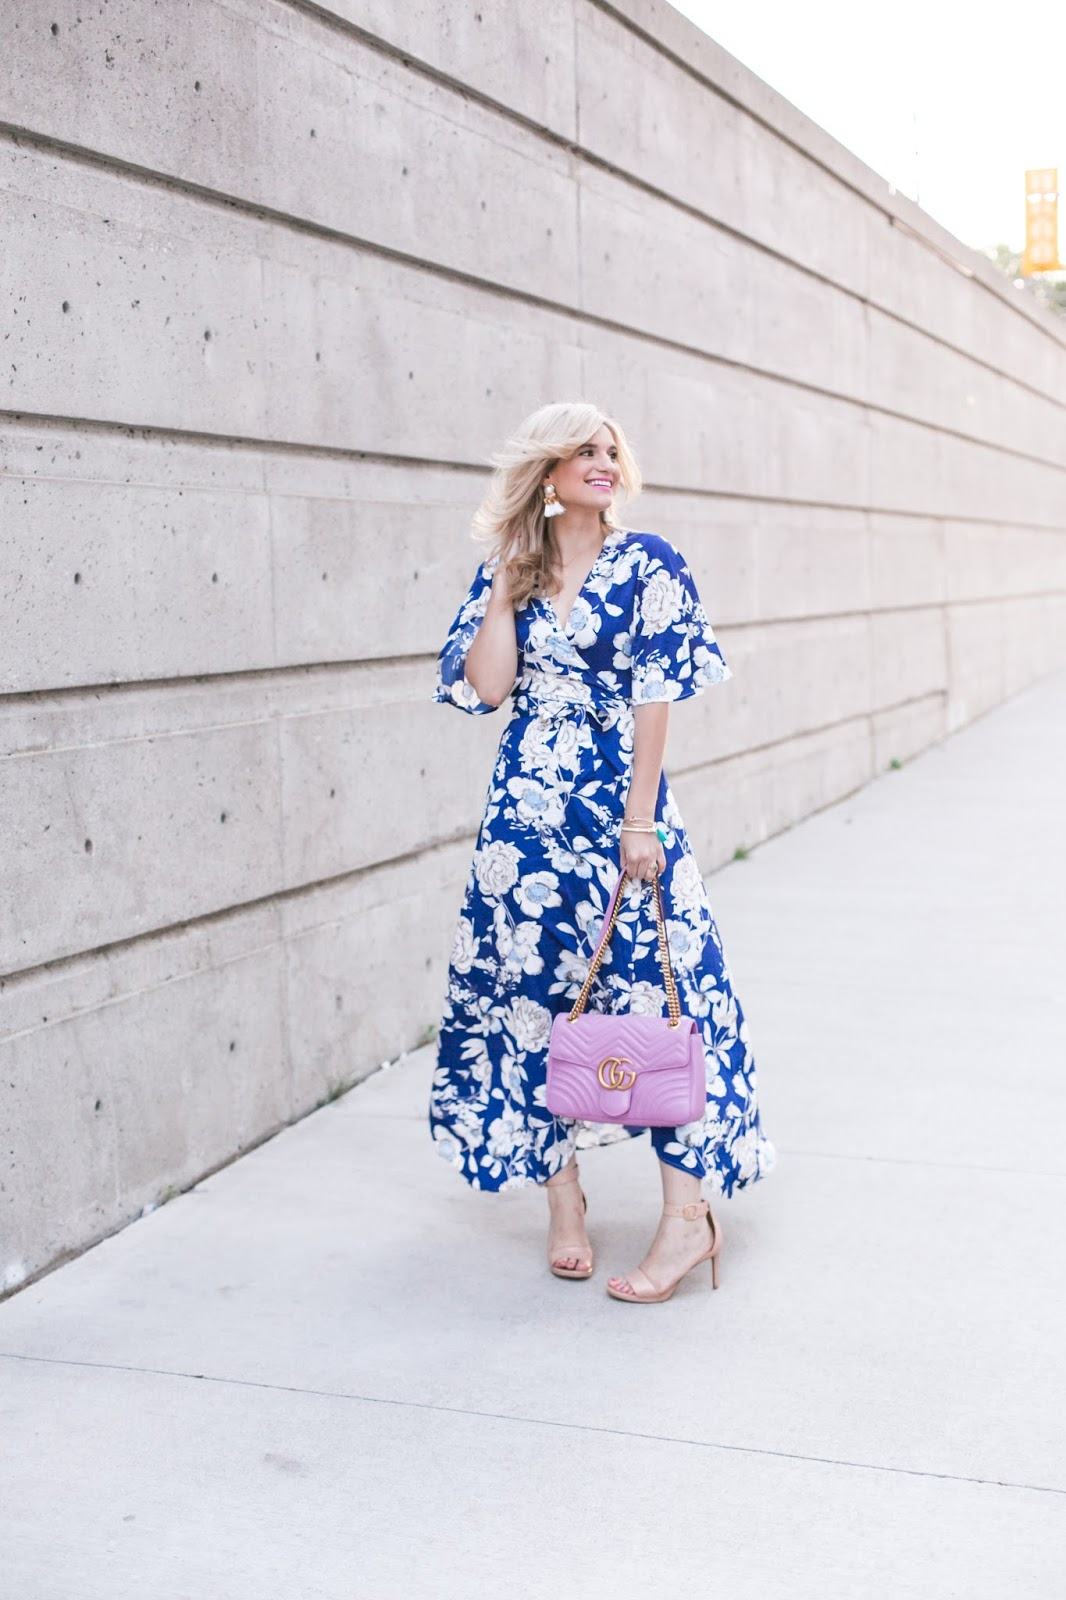 Bijuleni - This floral dress is only $18 plus 7 Easy Ways To Transition Your Summer style to Fall - Floral print maxi dress, Gucci Marmont Matelasse handbag and nude strap heel sandals ootd